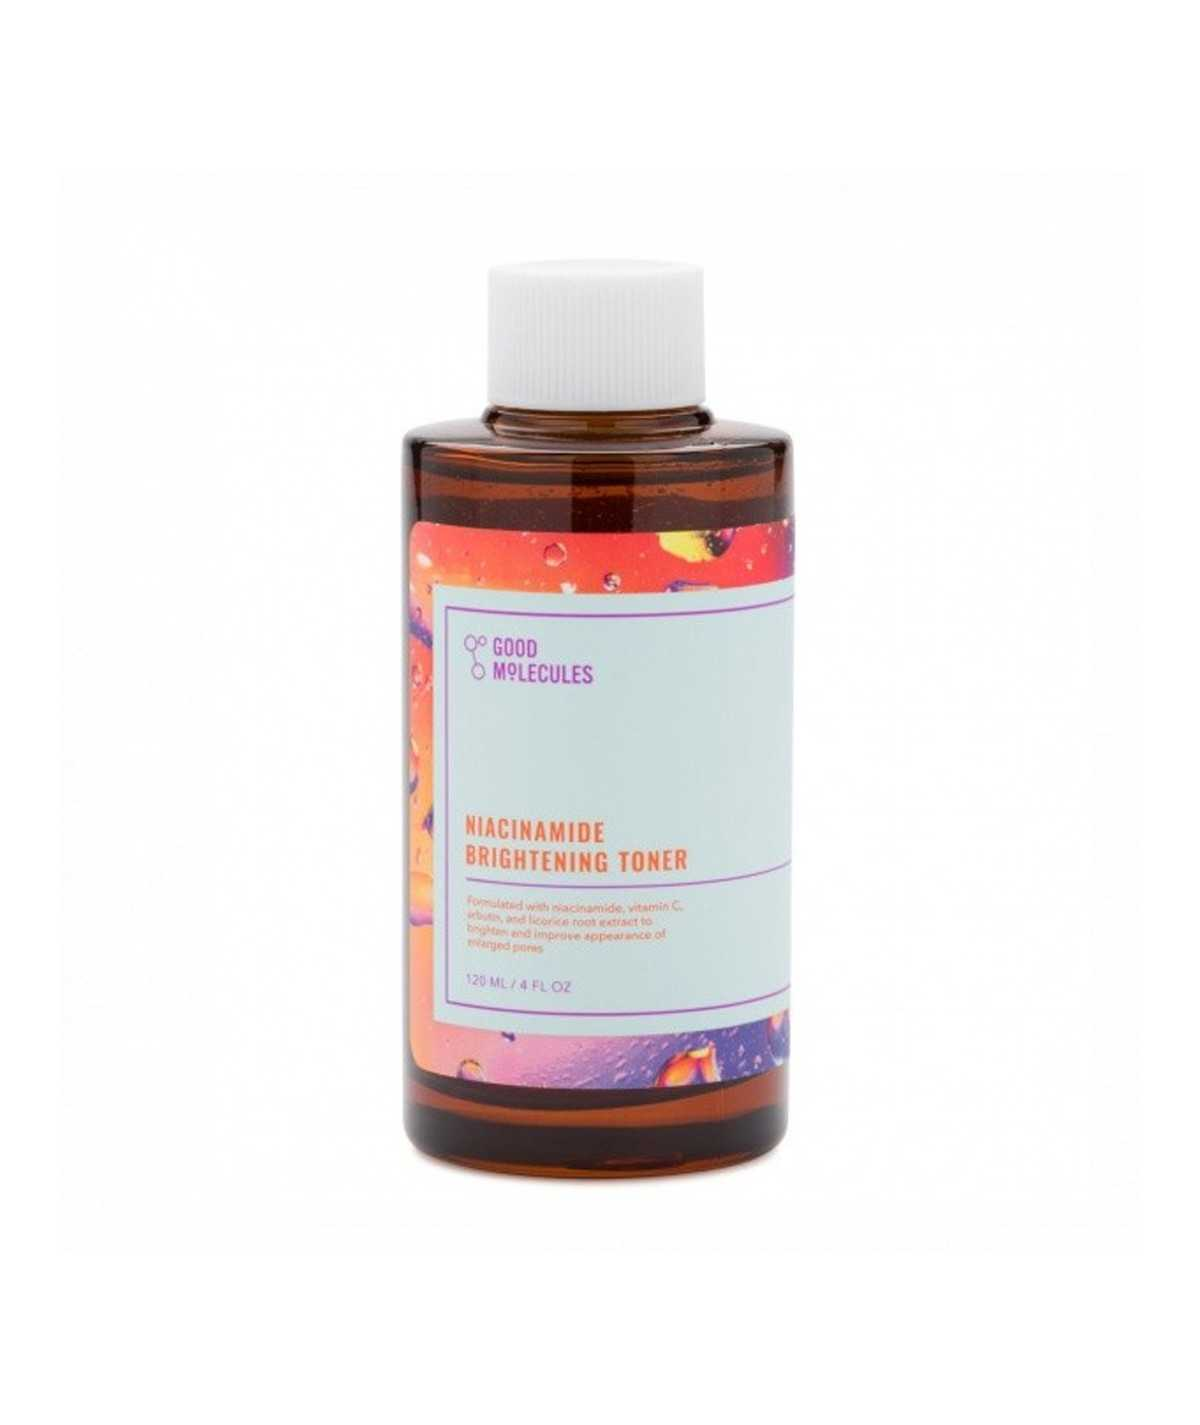 Good Molecules Niacinamide Brightening Toner